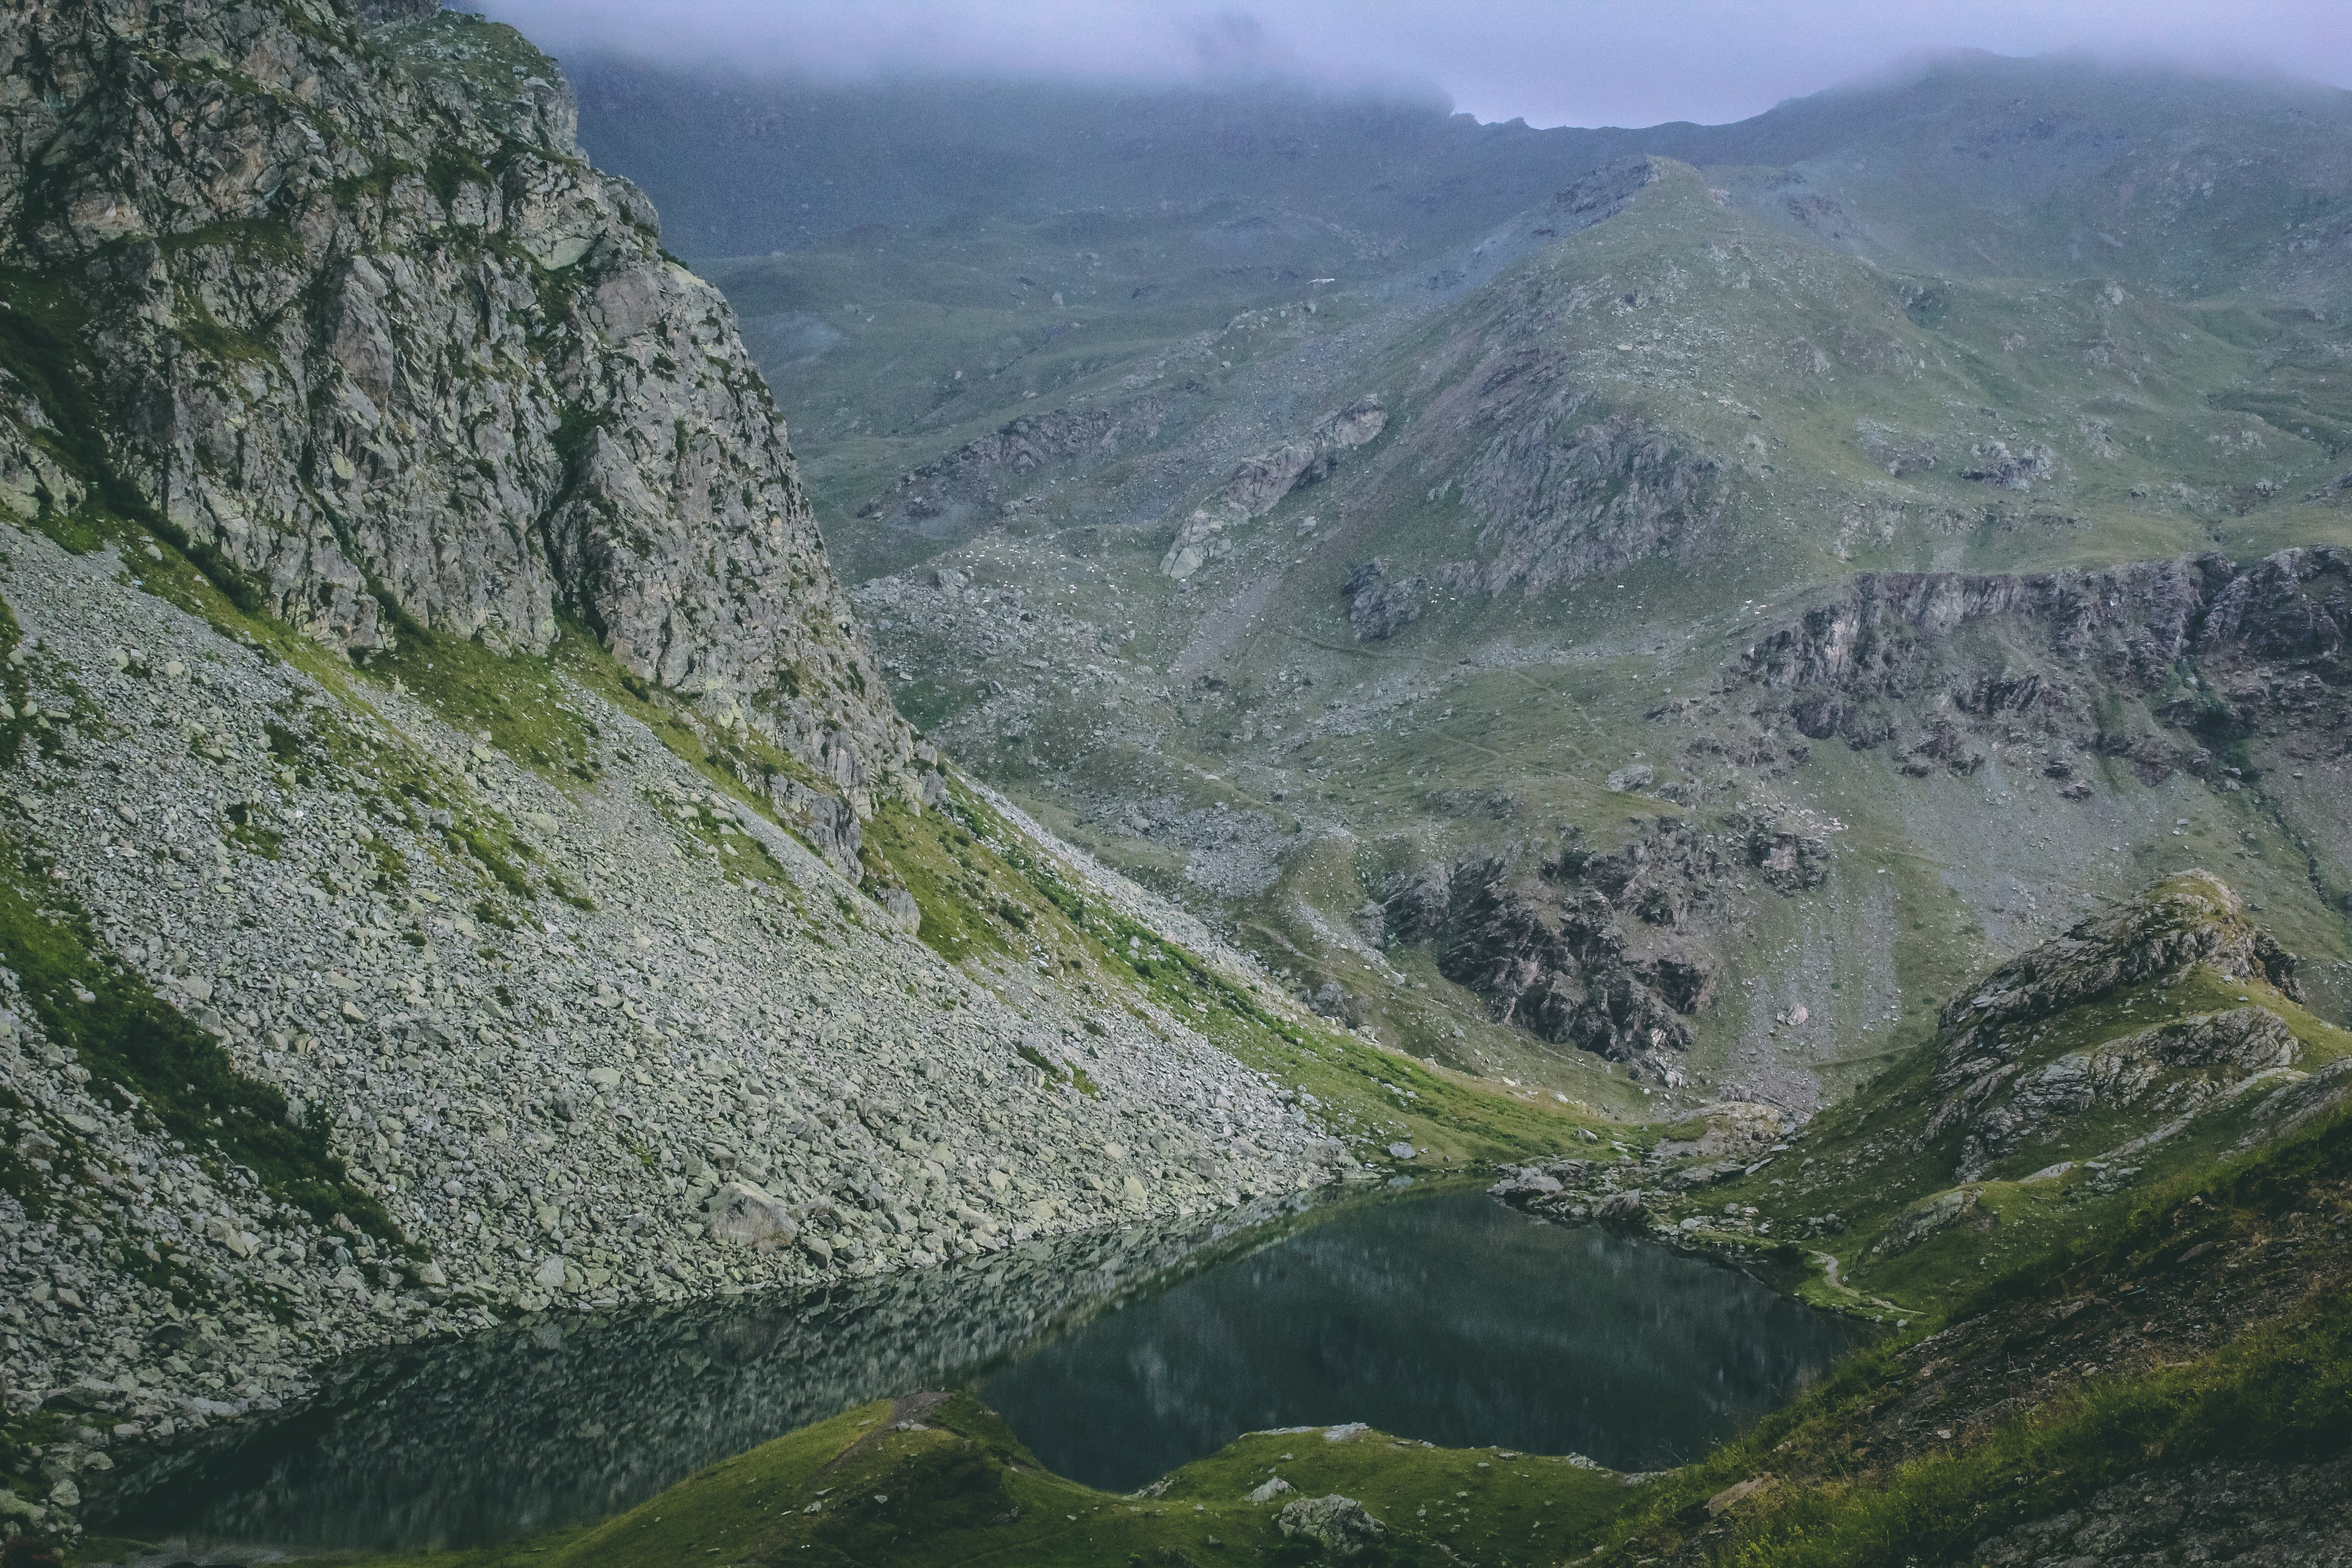 Green and Gray Mountain